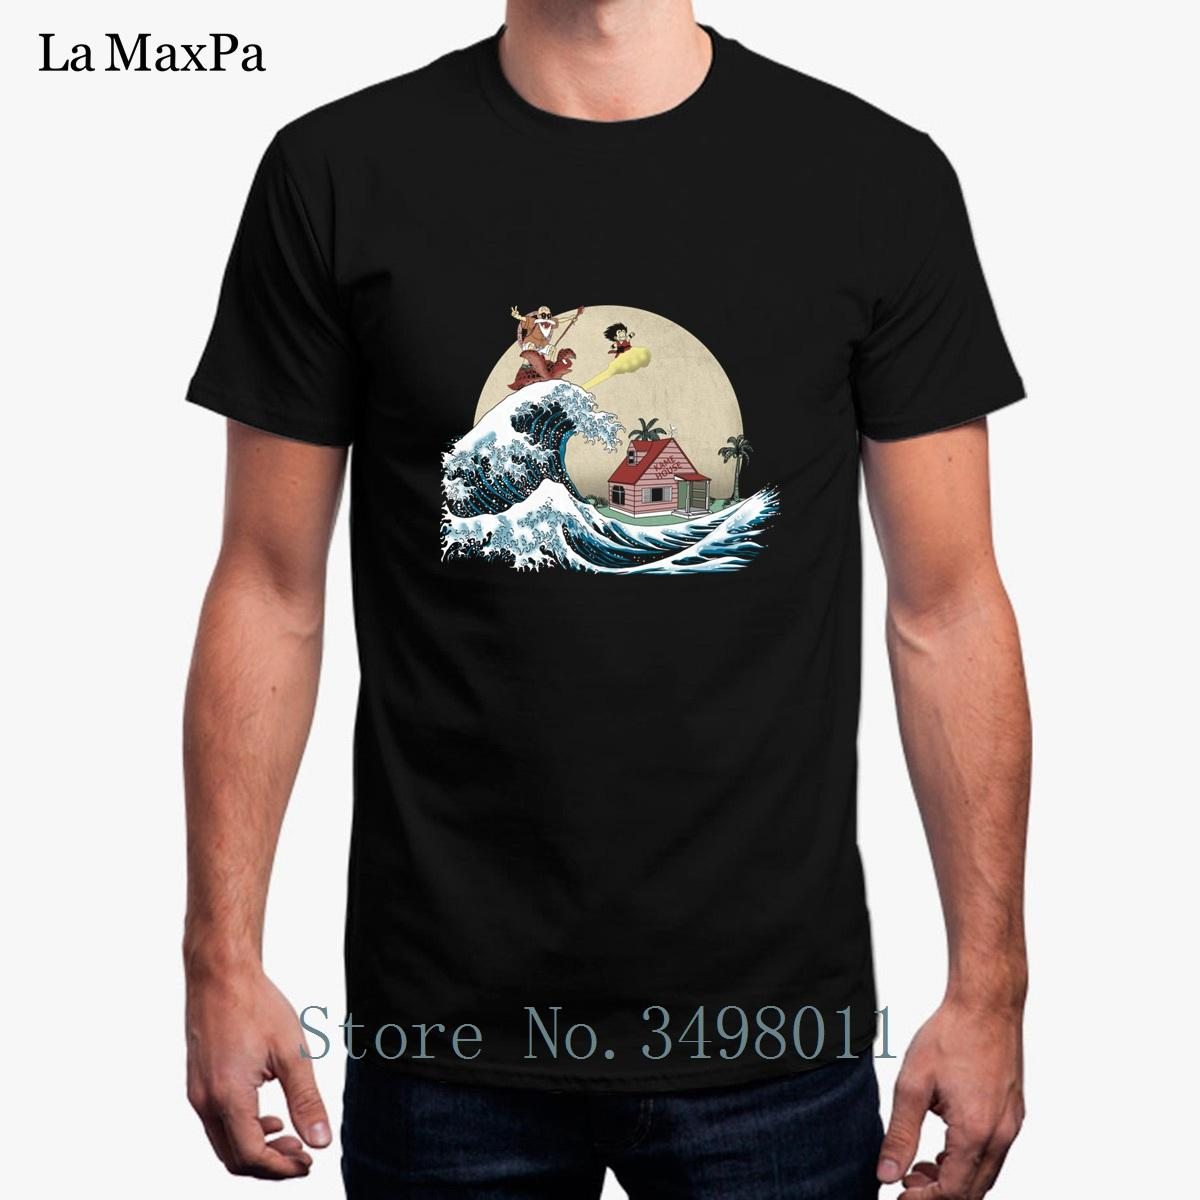 New Print The Great Adventure T-Shirt For Men Clothes T Shirt O-Neck Summer Tee Shirt 2018 Man asual Short Sleeved Free shipping